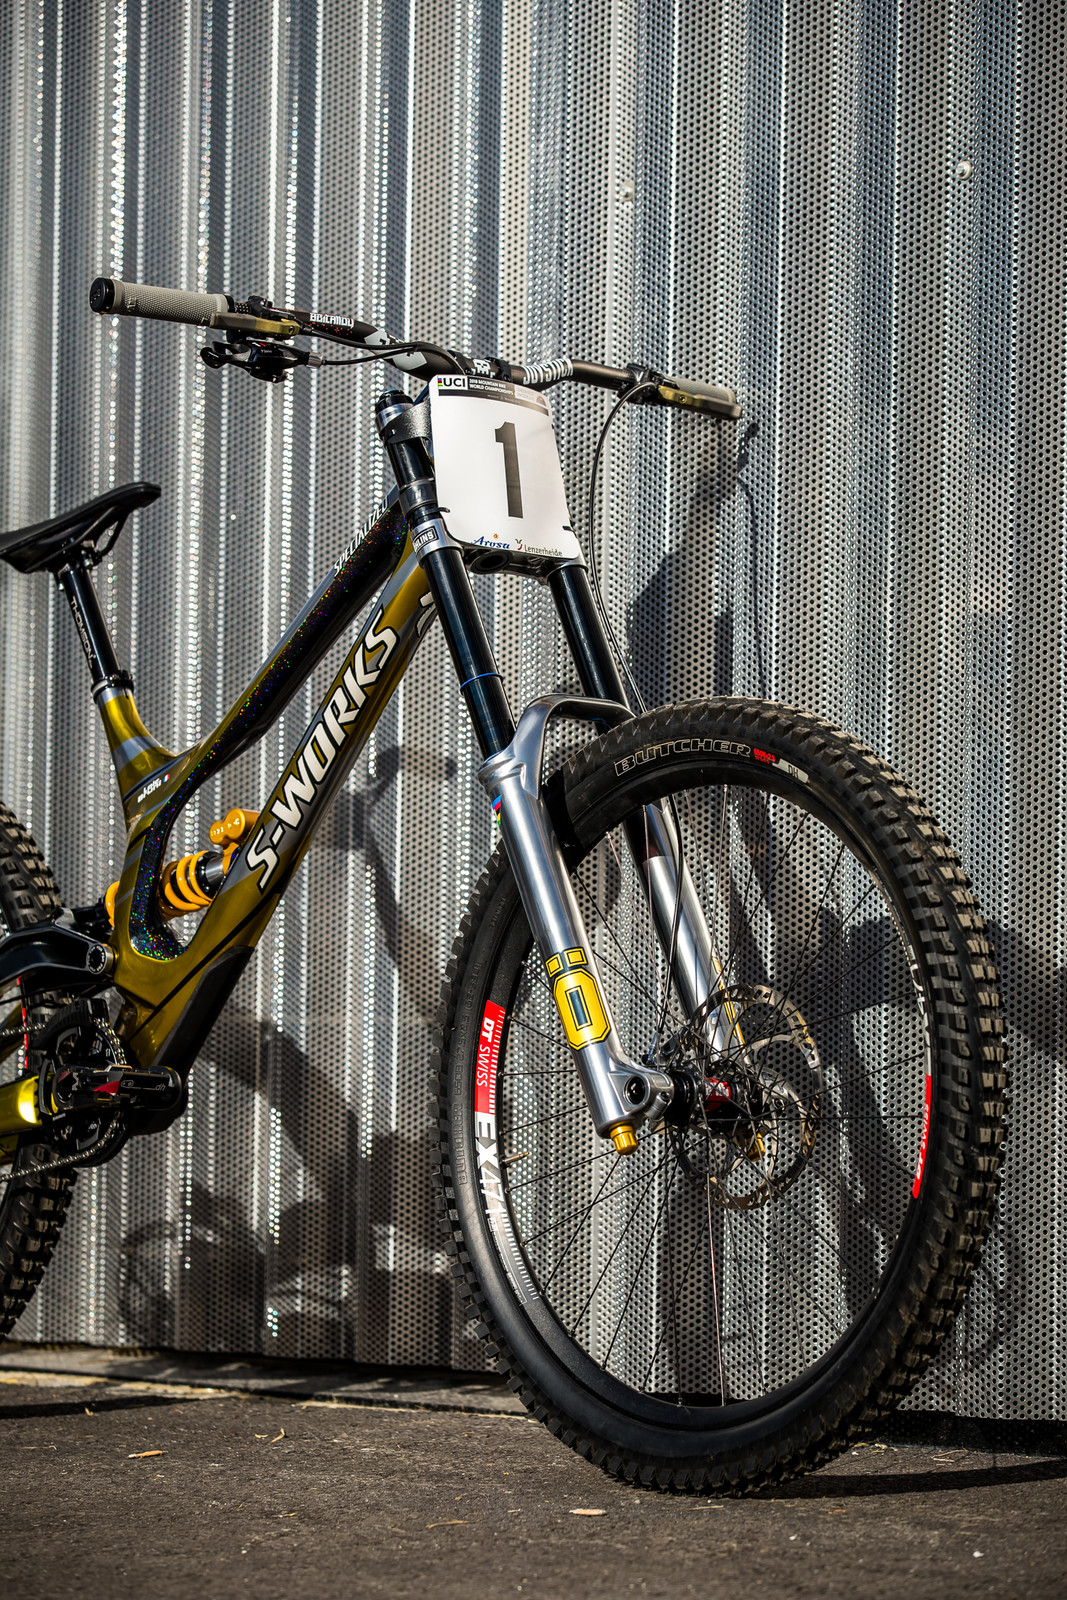 Silver Surfer Wrapped in Gold - WORLD CHAMPS BIKE - Loic Bruni's Specialized Demo - Mountain Biking Pictures - Vital MTB